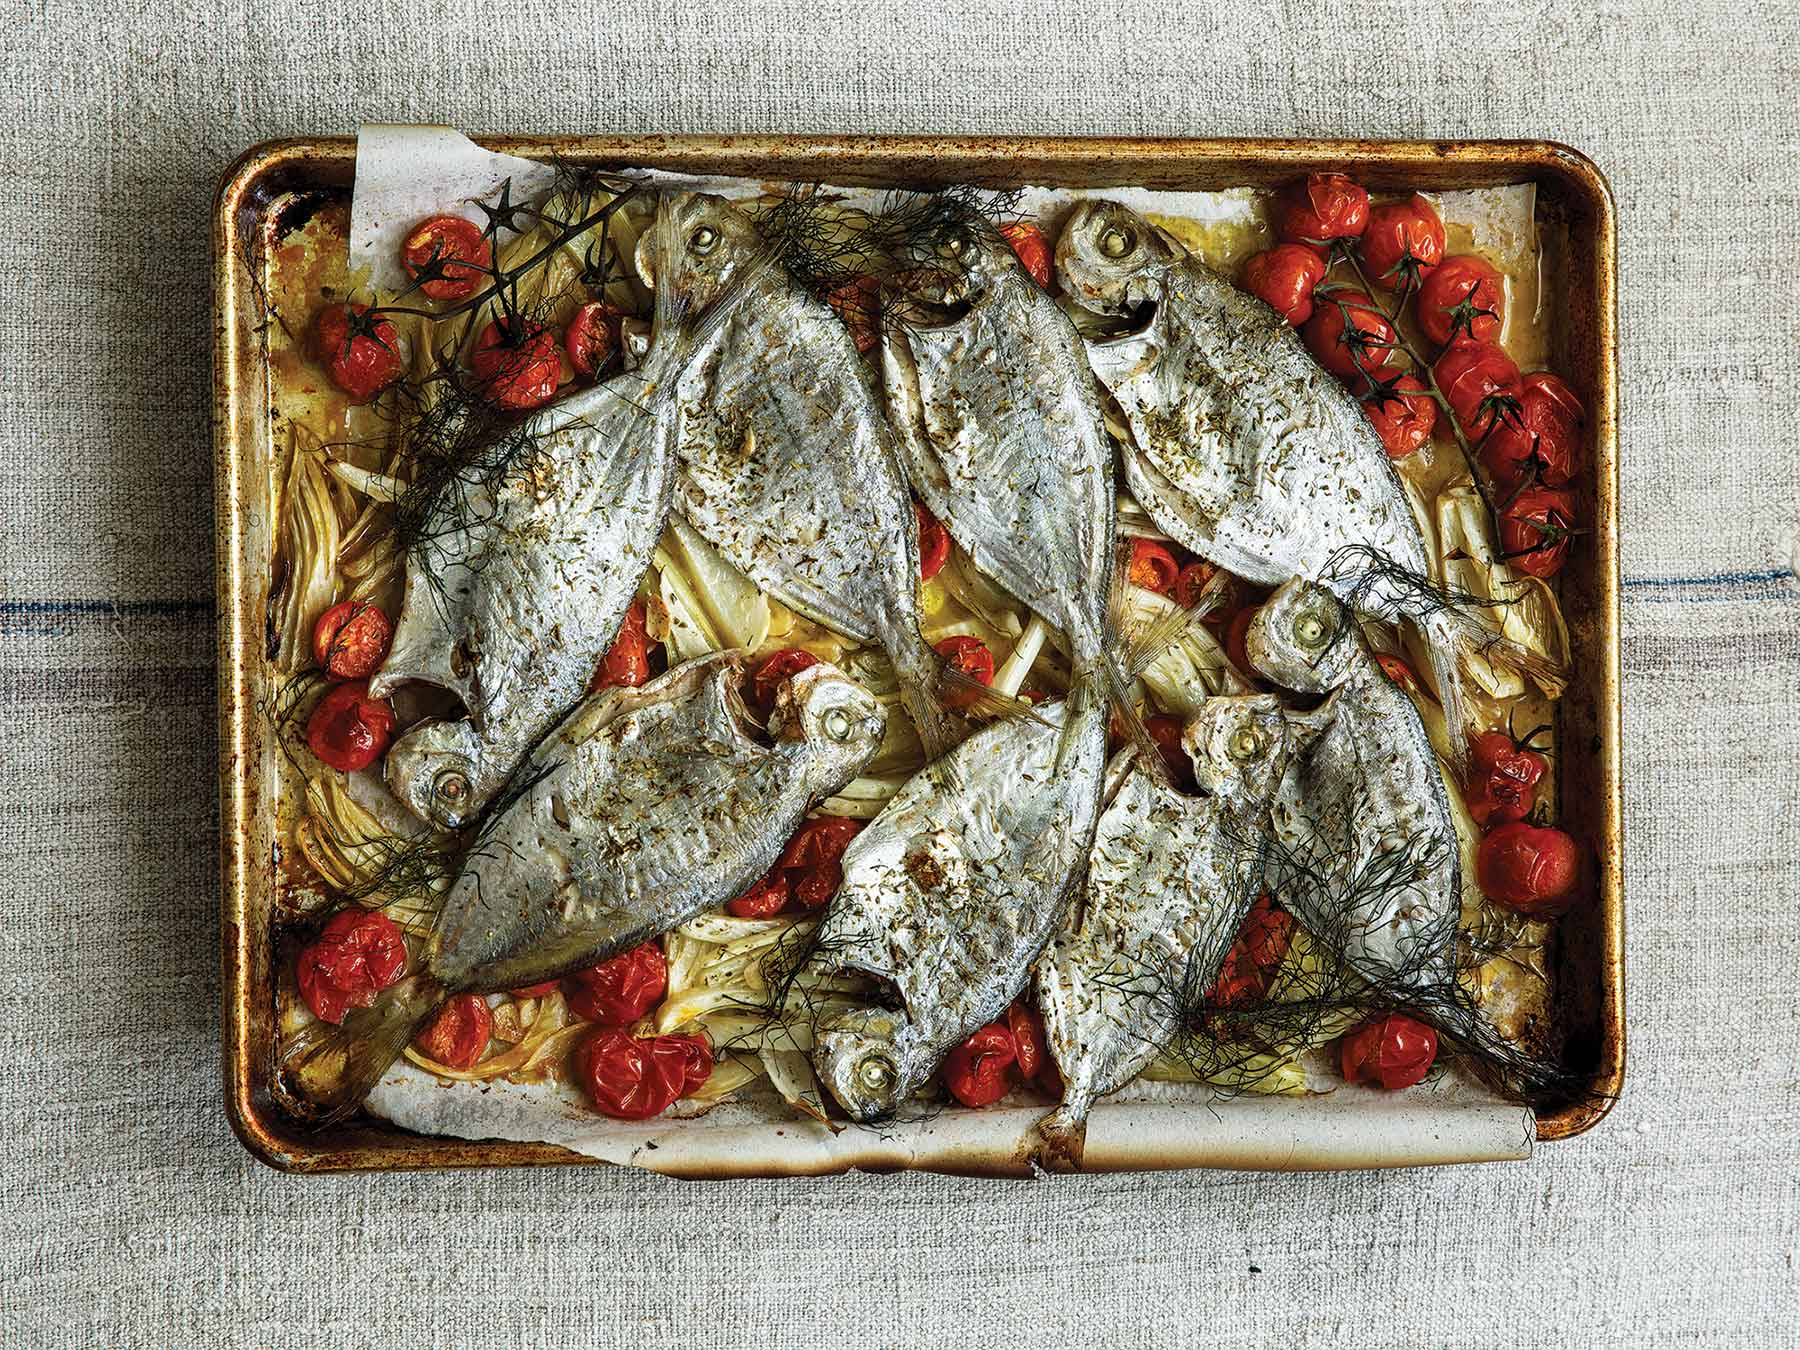 Oven-roasted Atlantic butterfish with fennel and tomato